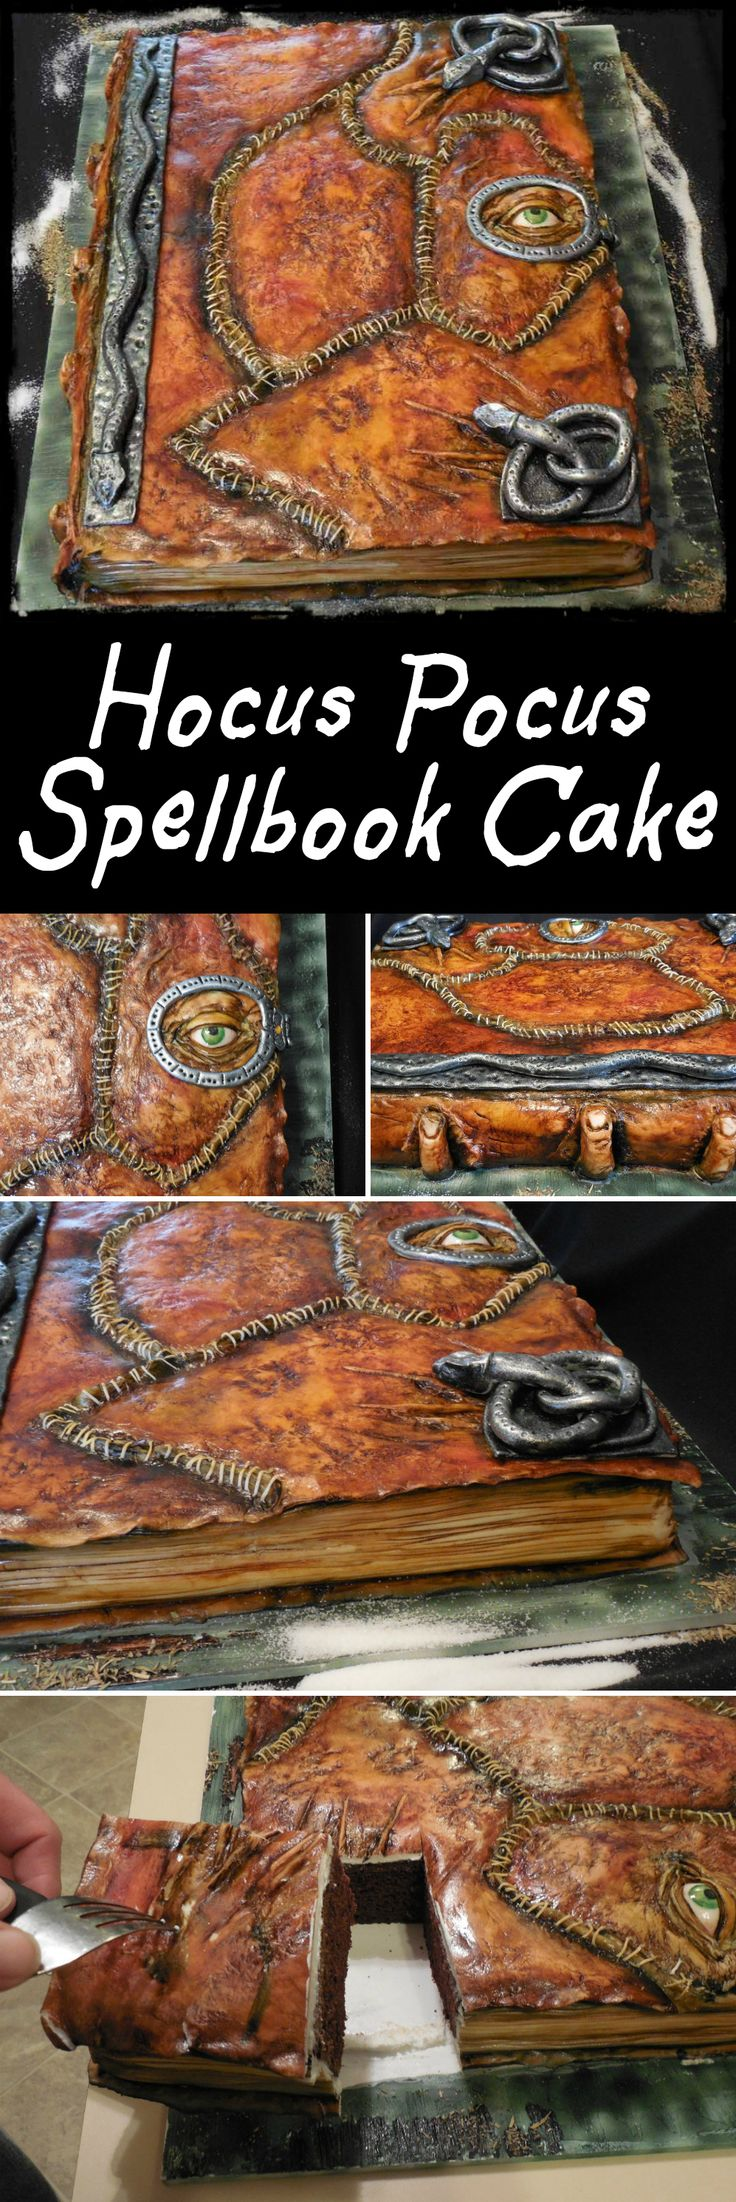 hocus pocus spellbook cake - Halloween Decorated Cakes